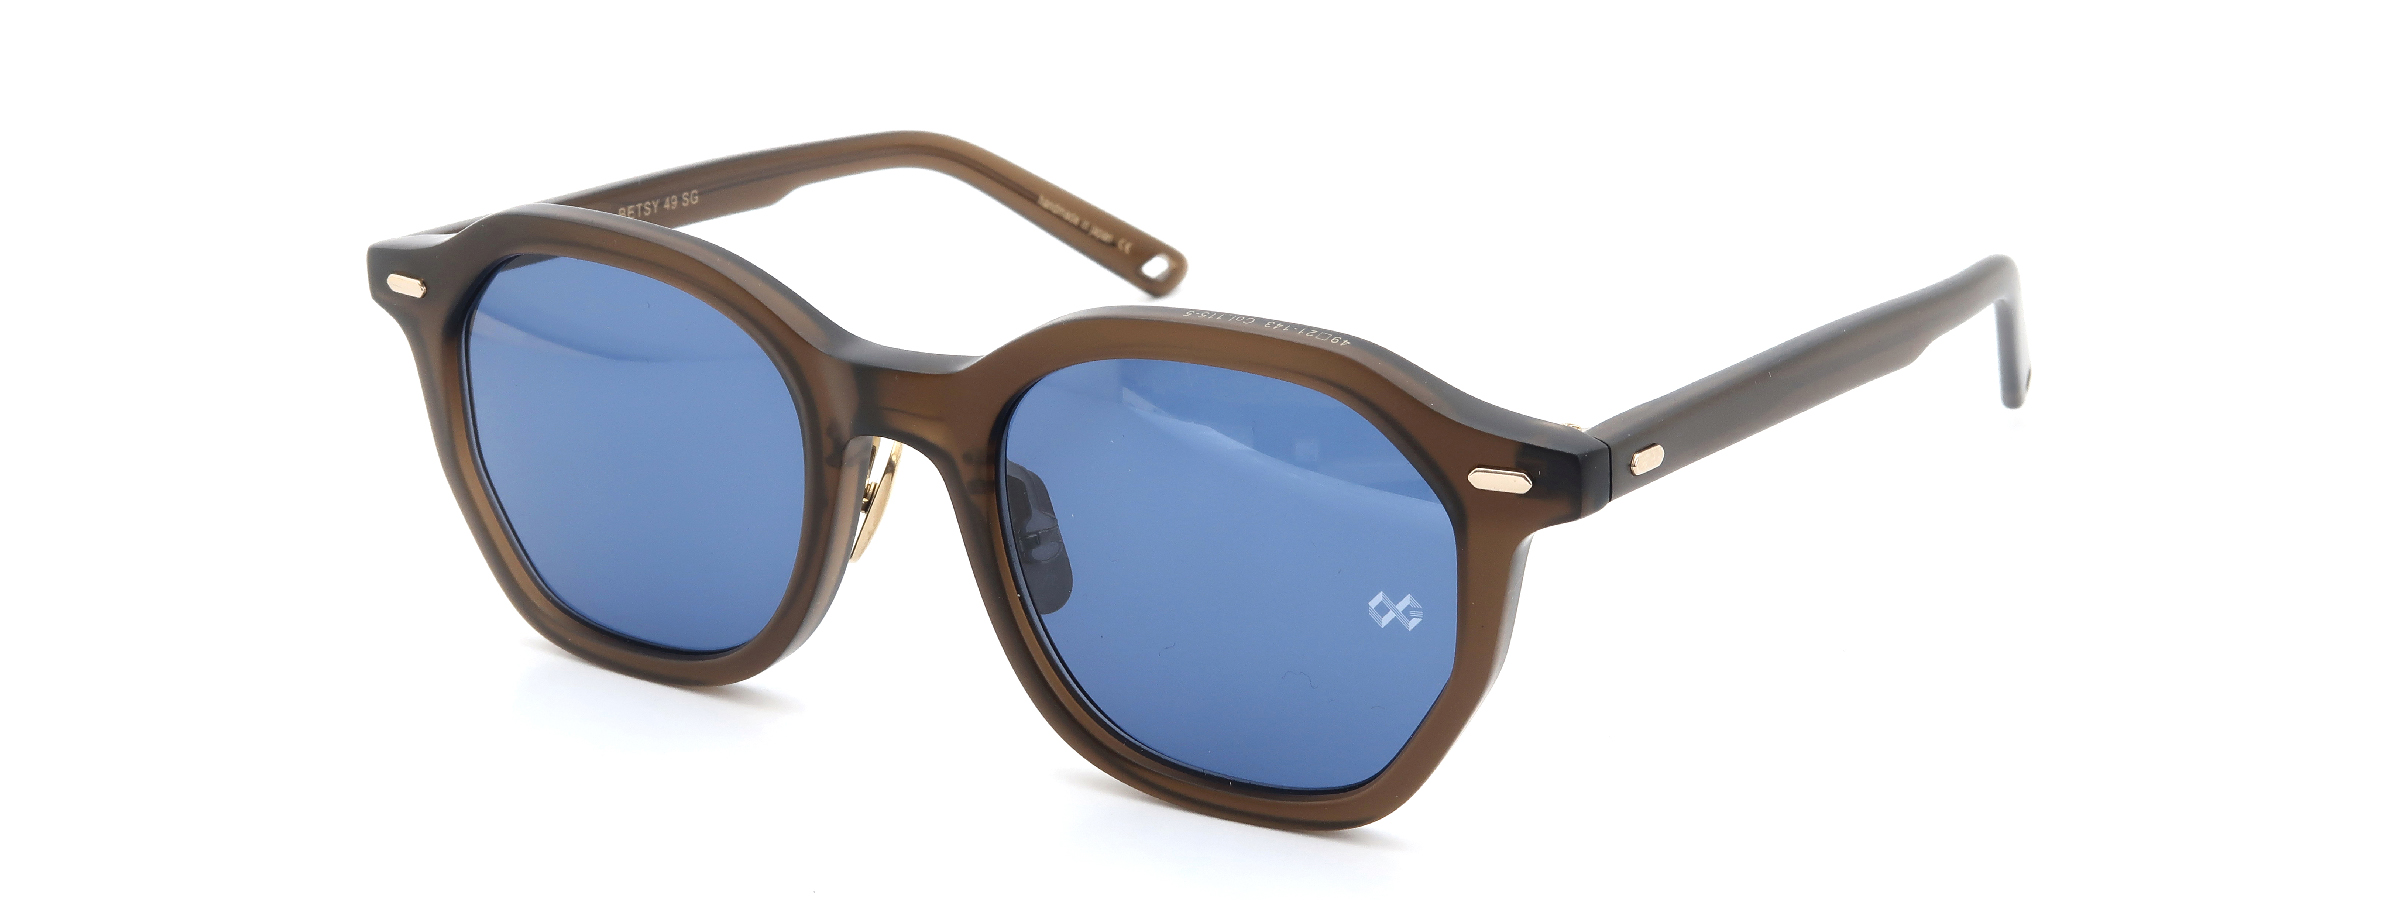 OG × OLIVER GOLDSMITH Re:BETSY 49 SG リ:ベッツィ